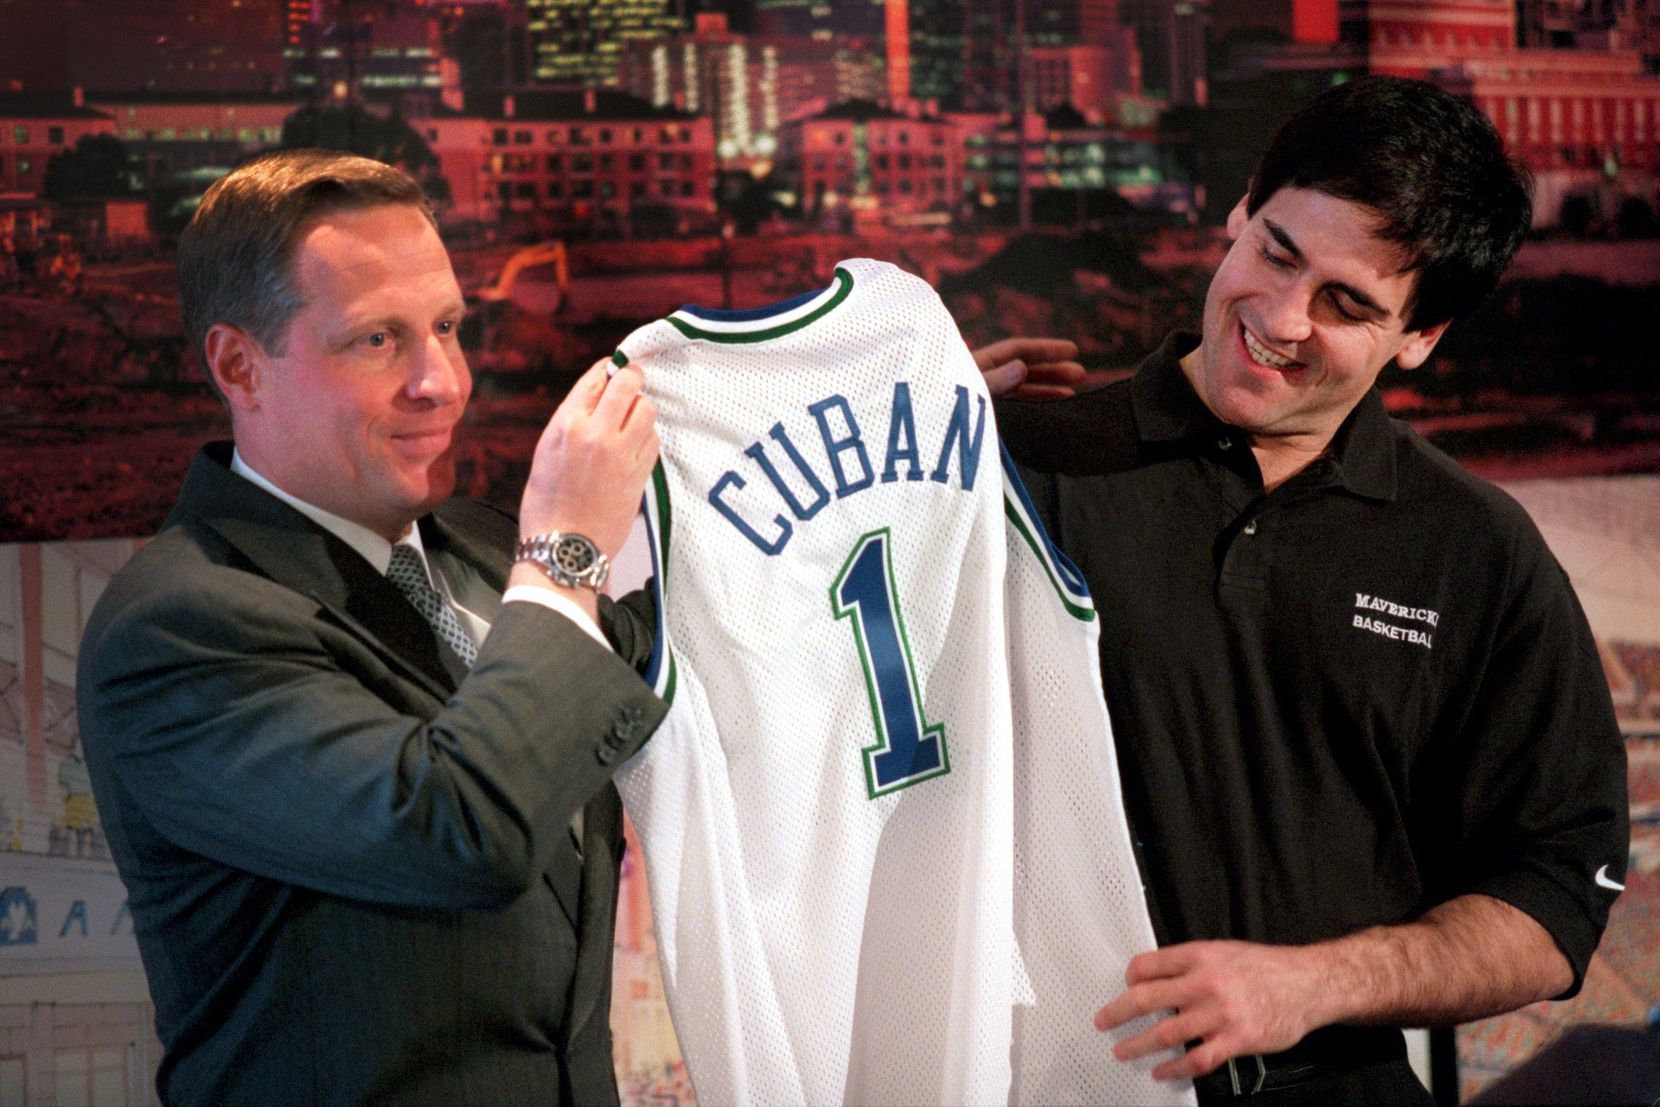 January 20, 2000: Ross Perot Jr. (left) presents Mark Cuban with a Dallas Mavericks jersey during a press conference to formally announce their definitive agreement for the sale of the Dallas Mavericks. Cuban agreed to purchase the franchise for $285 million on Jan. 4, 2000.